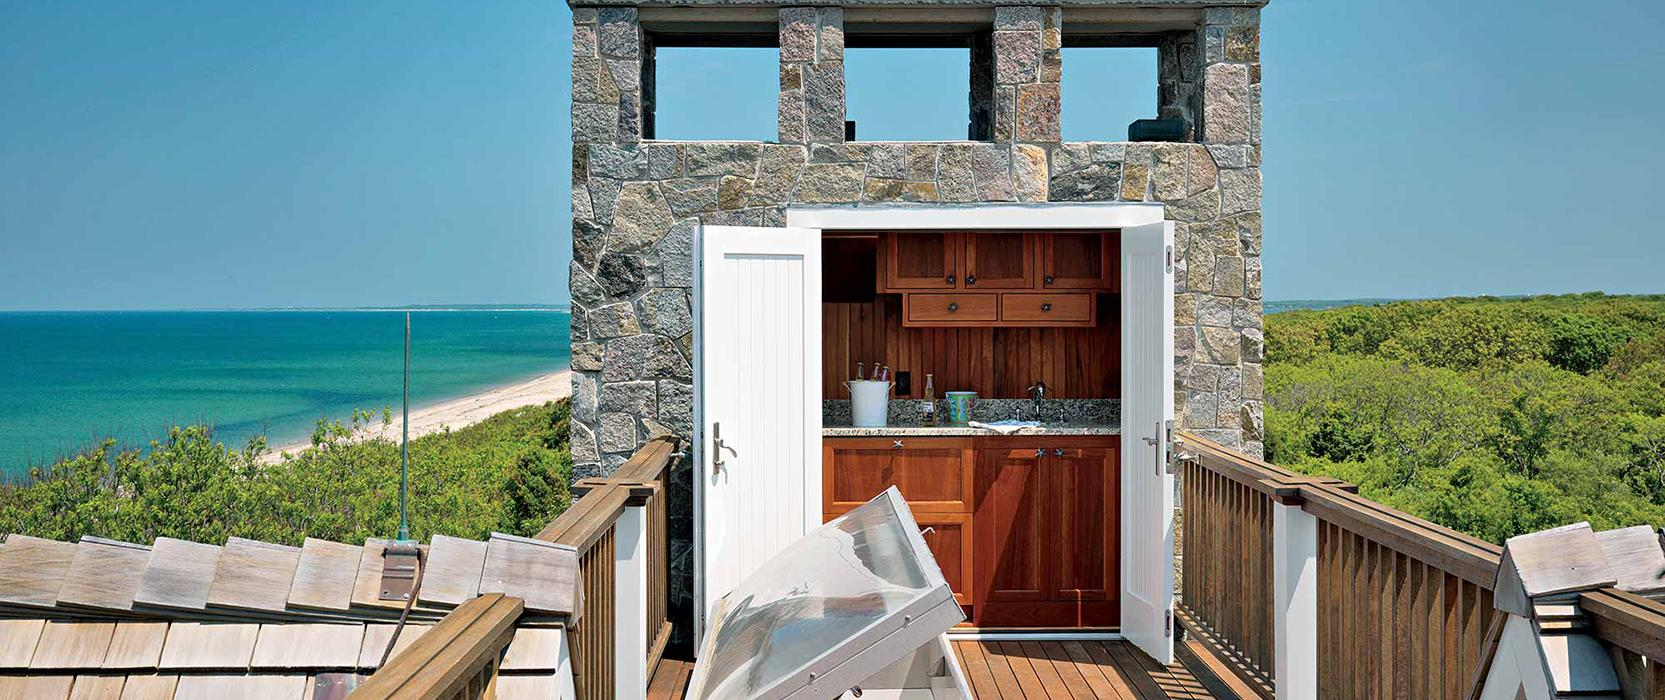 High-end New England architects and builders